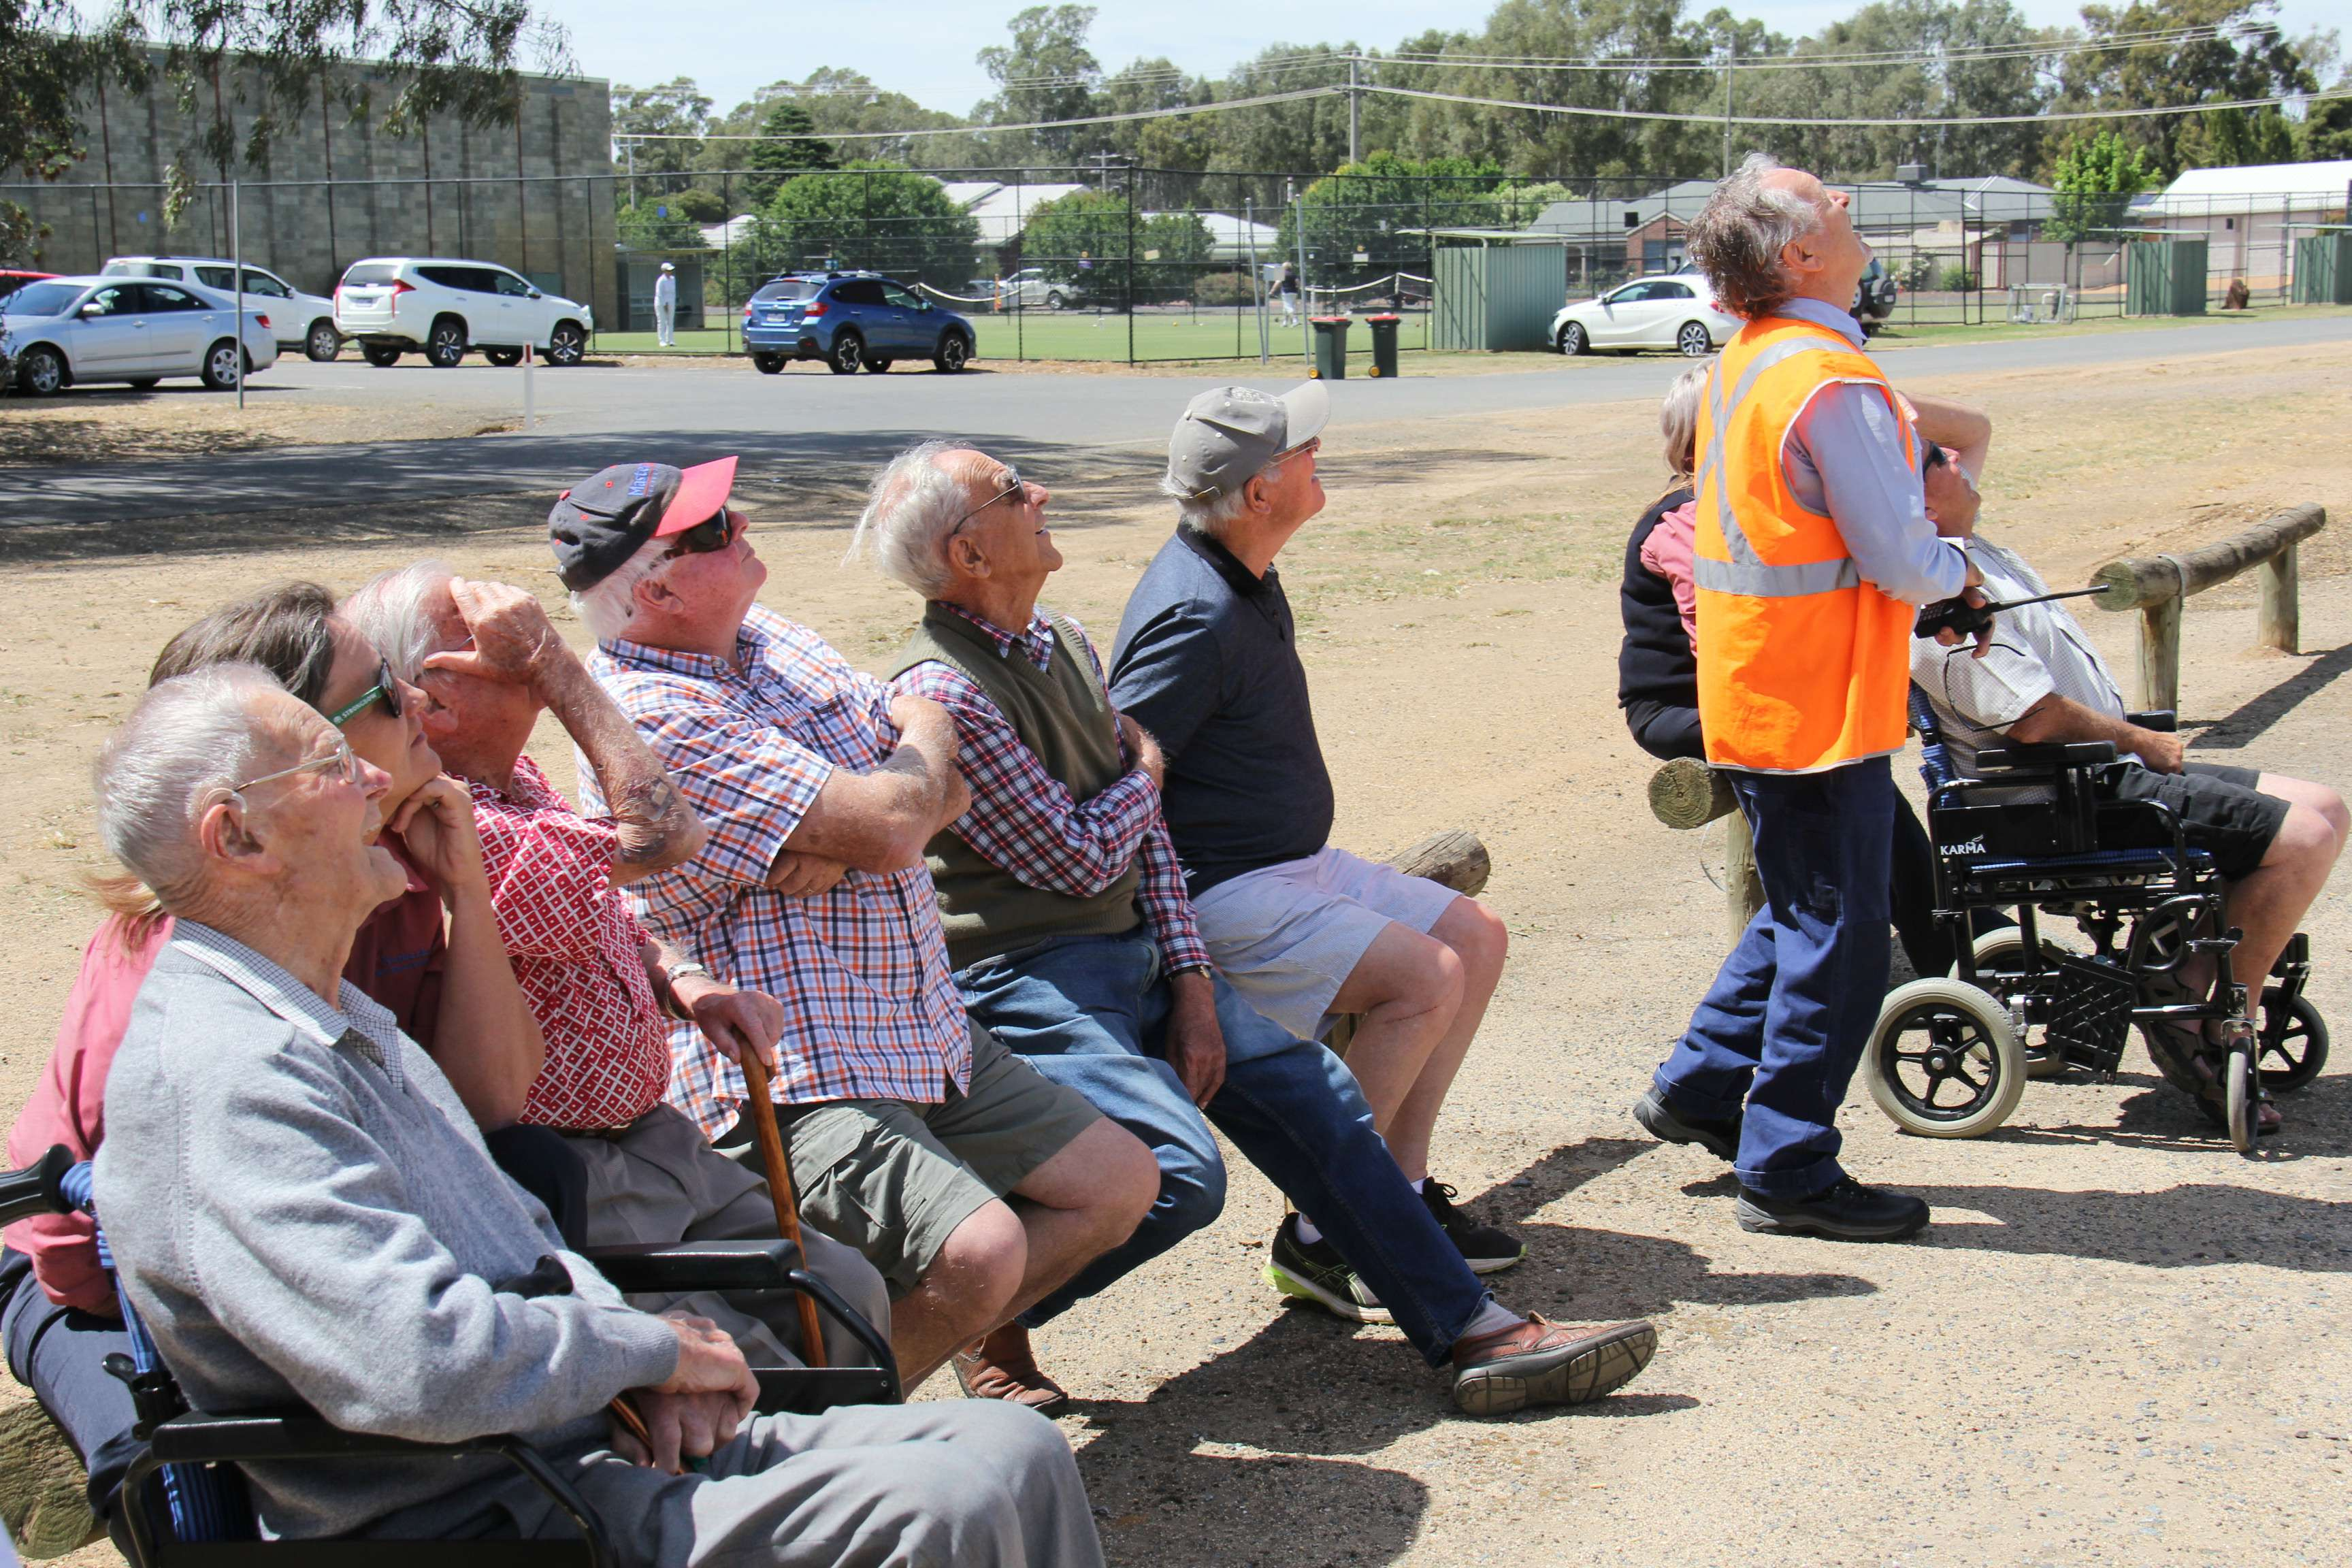 Members of the Numurkah Network watch the drone demonstration.